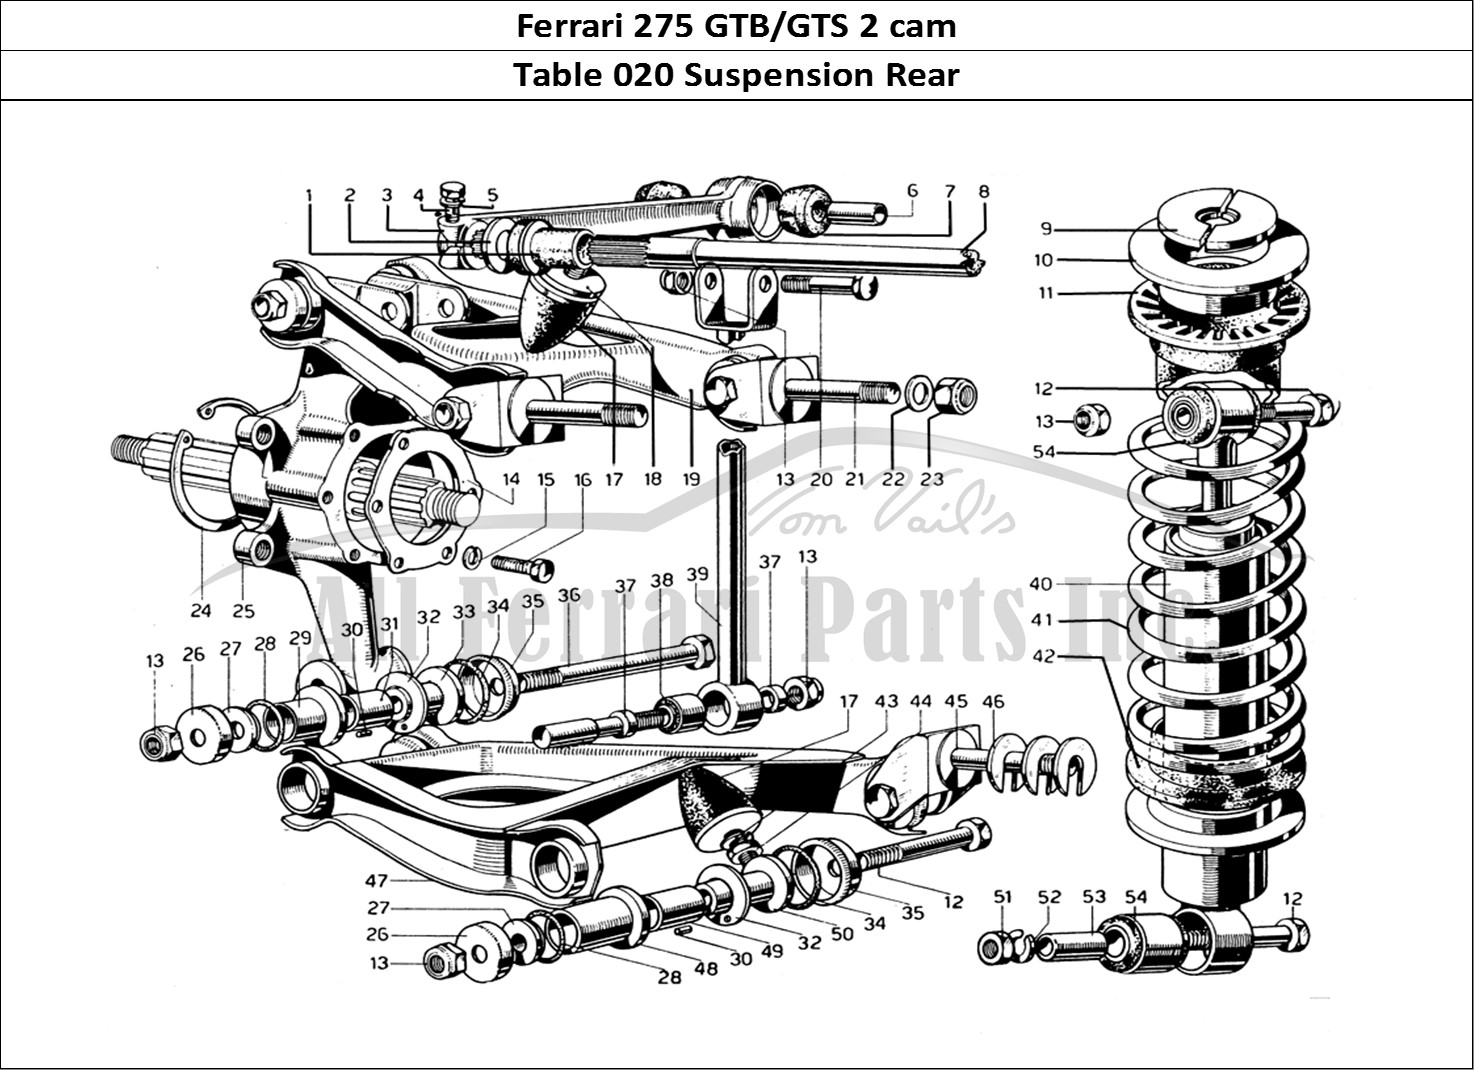 Buy original Ferrari 275 GTB/GTS 2 cam 020 Suspension Rear